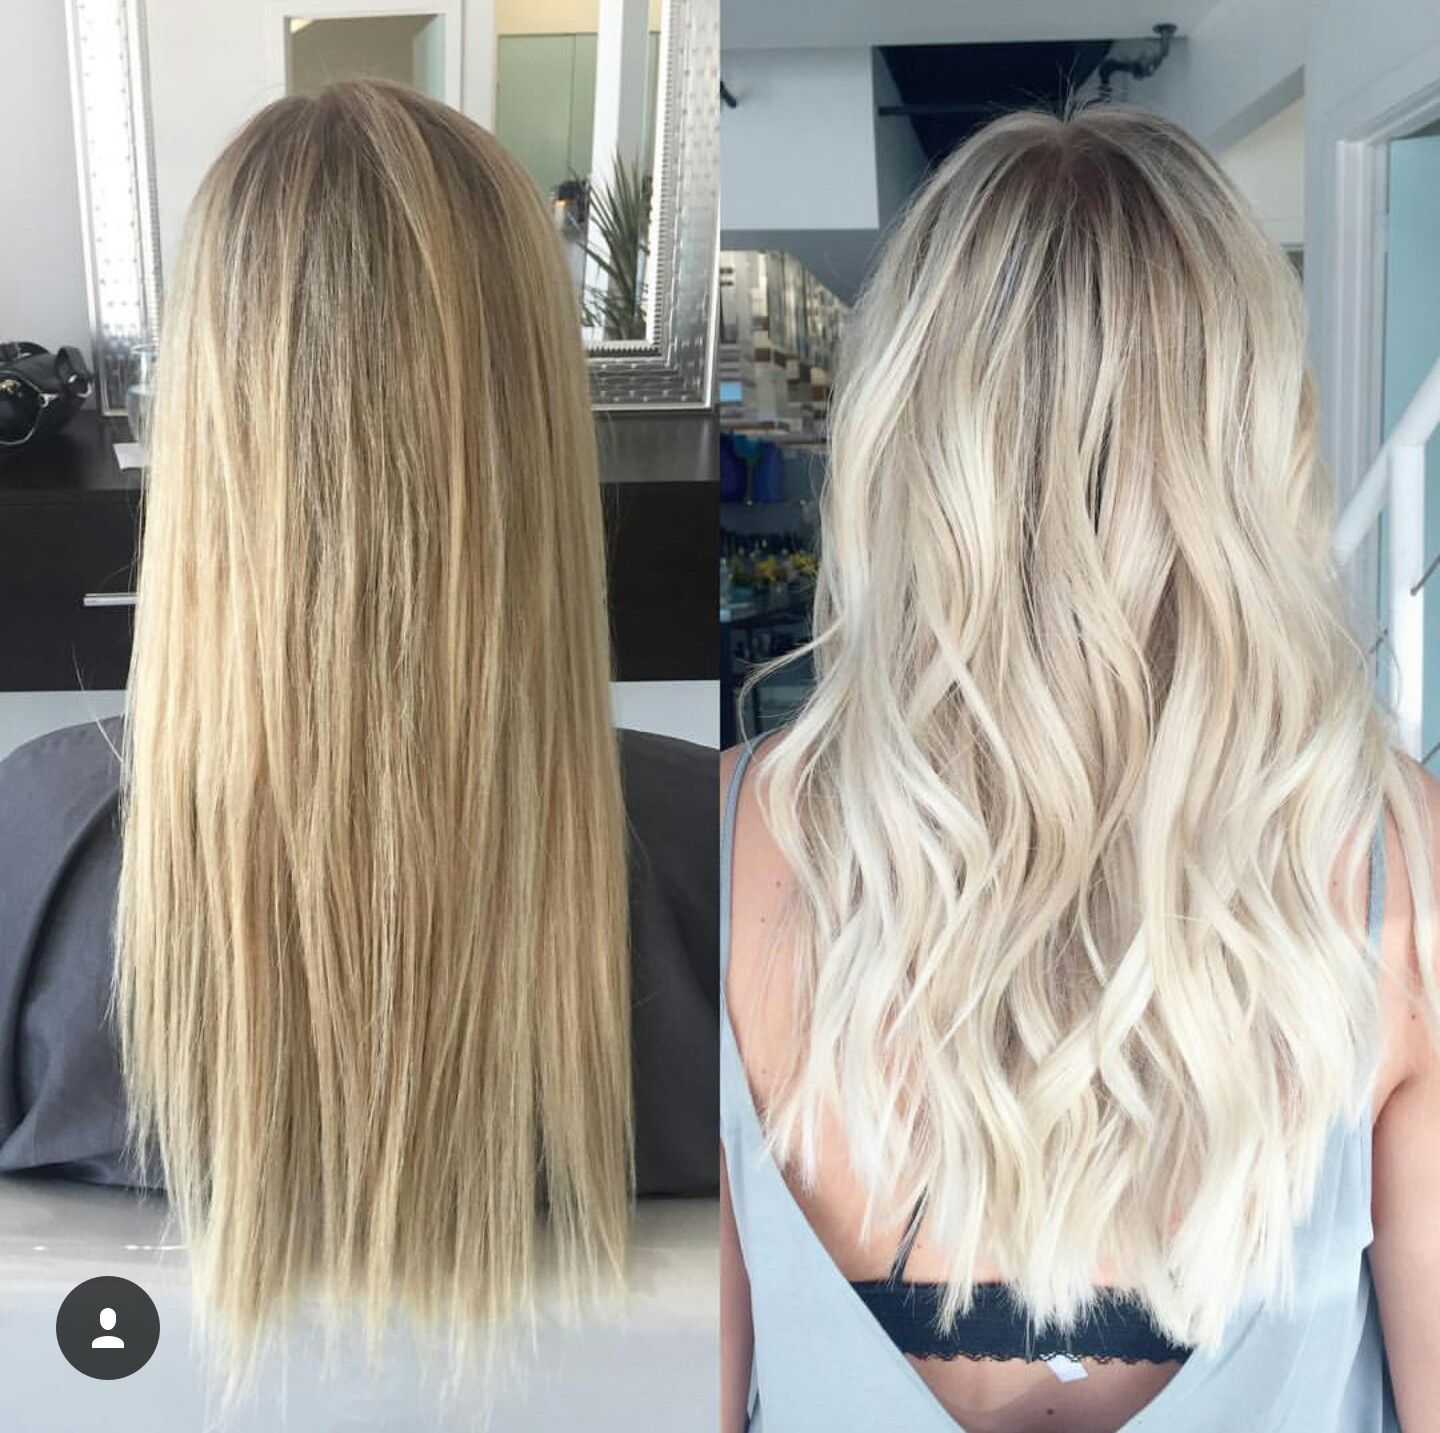 Darker Roots And Really Blonde Overall Looks Great I Want A